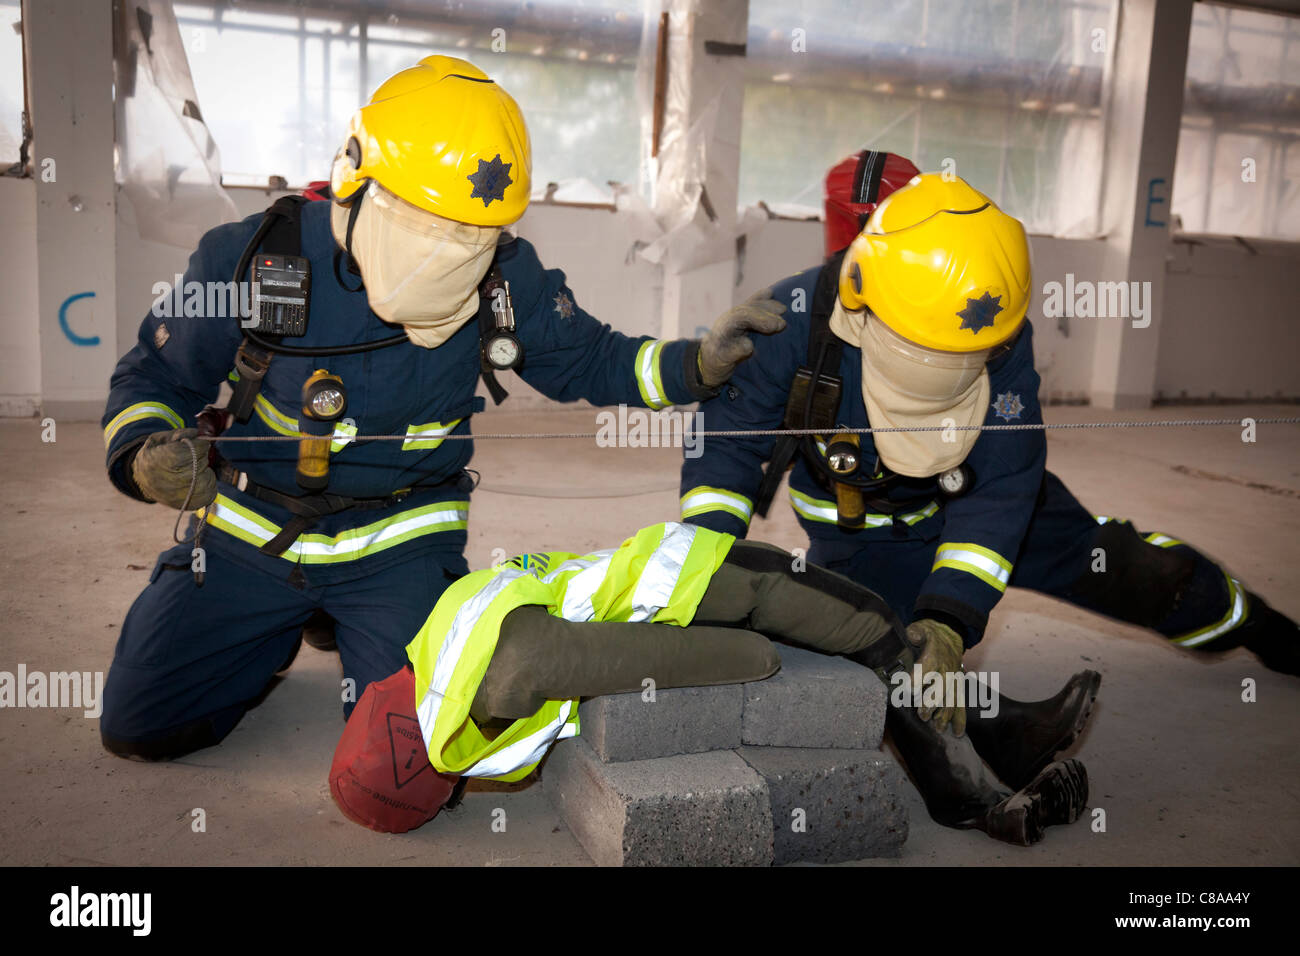 Fire Brigade exercise at Abingdon & Witney College site - Stock Image